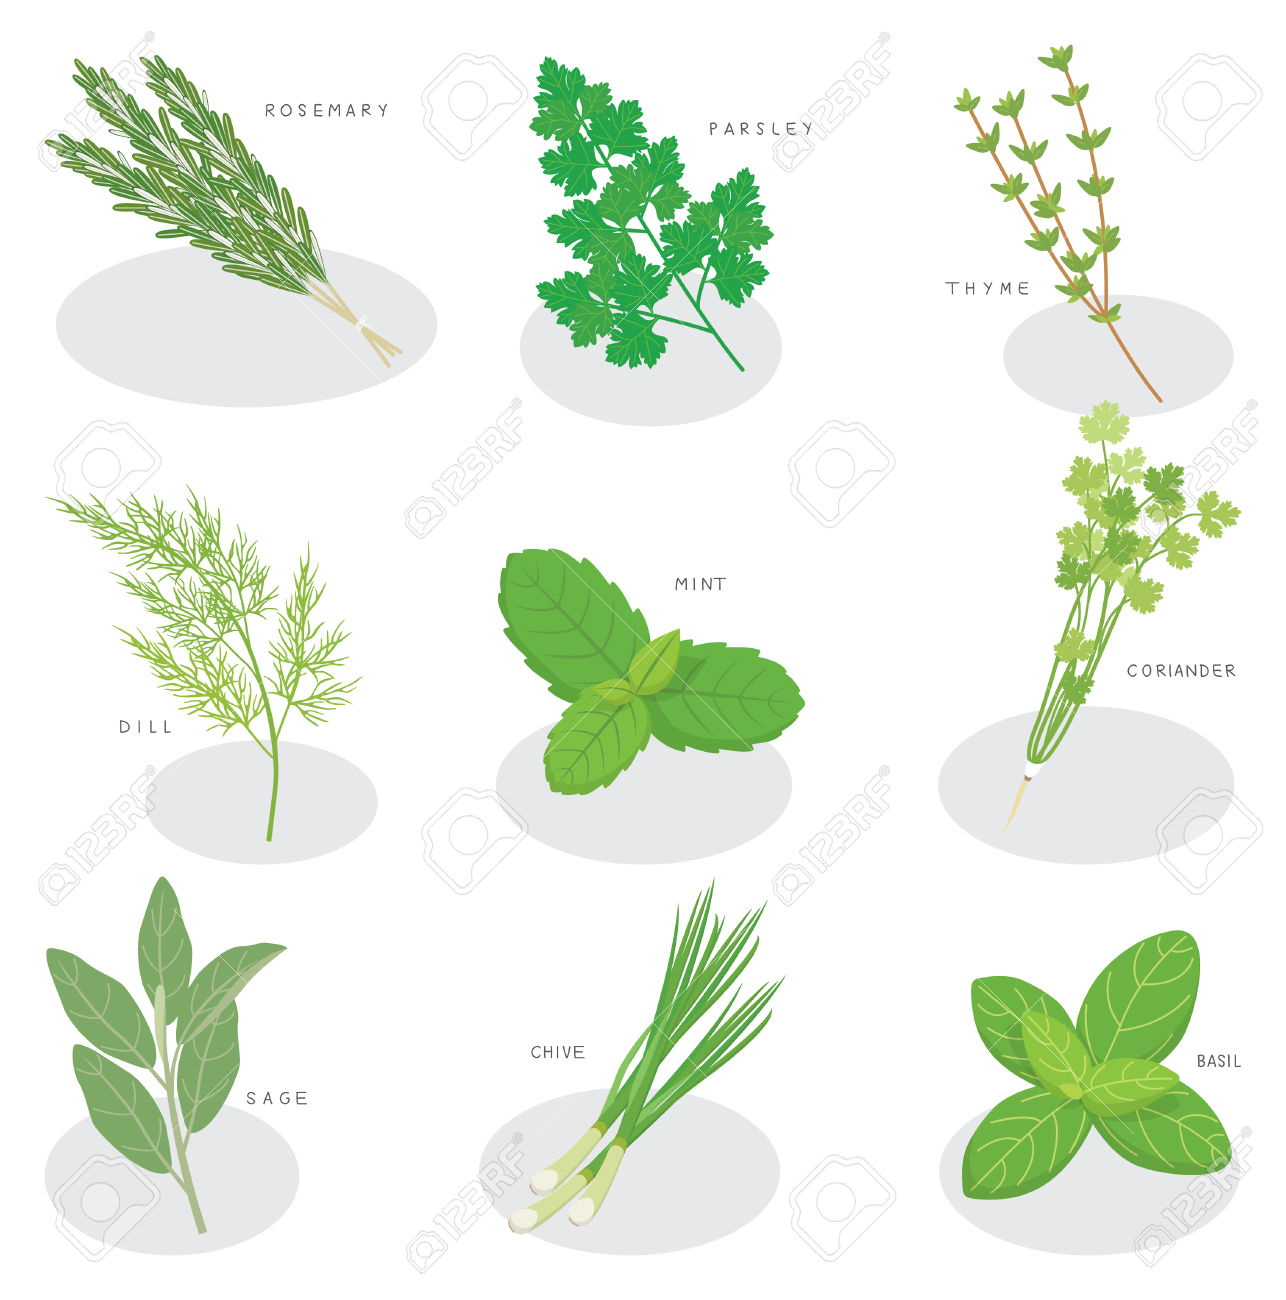 Collection Of Fresh Herbs Isolated: Mint, Basil, Rosemary, Parsley.